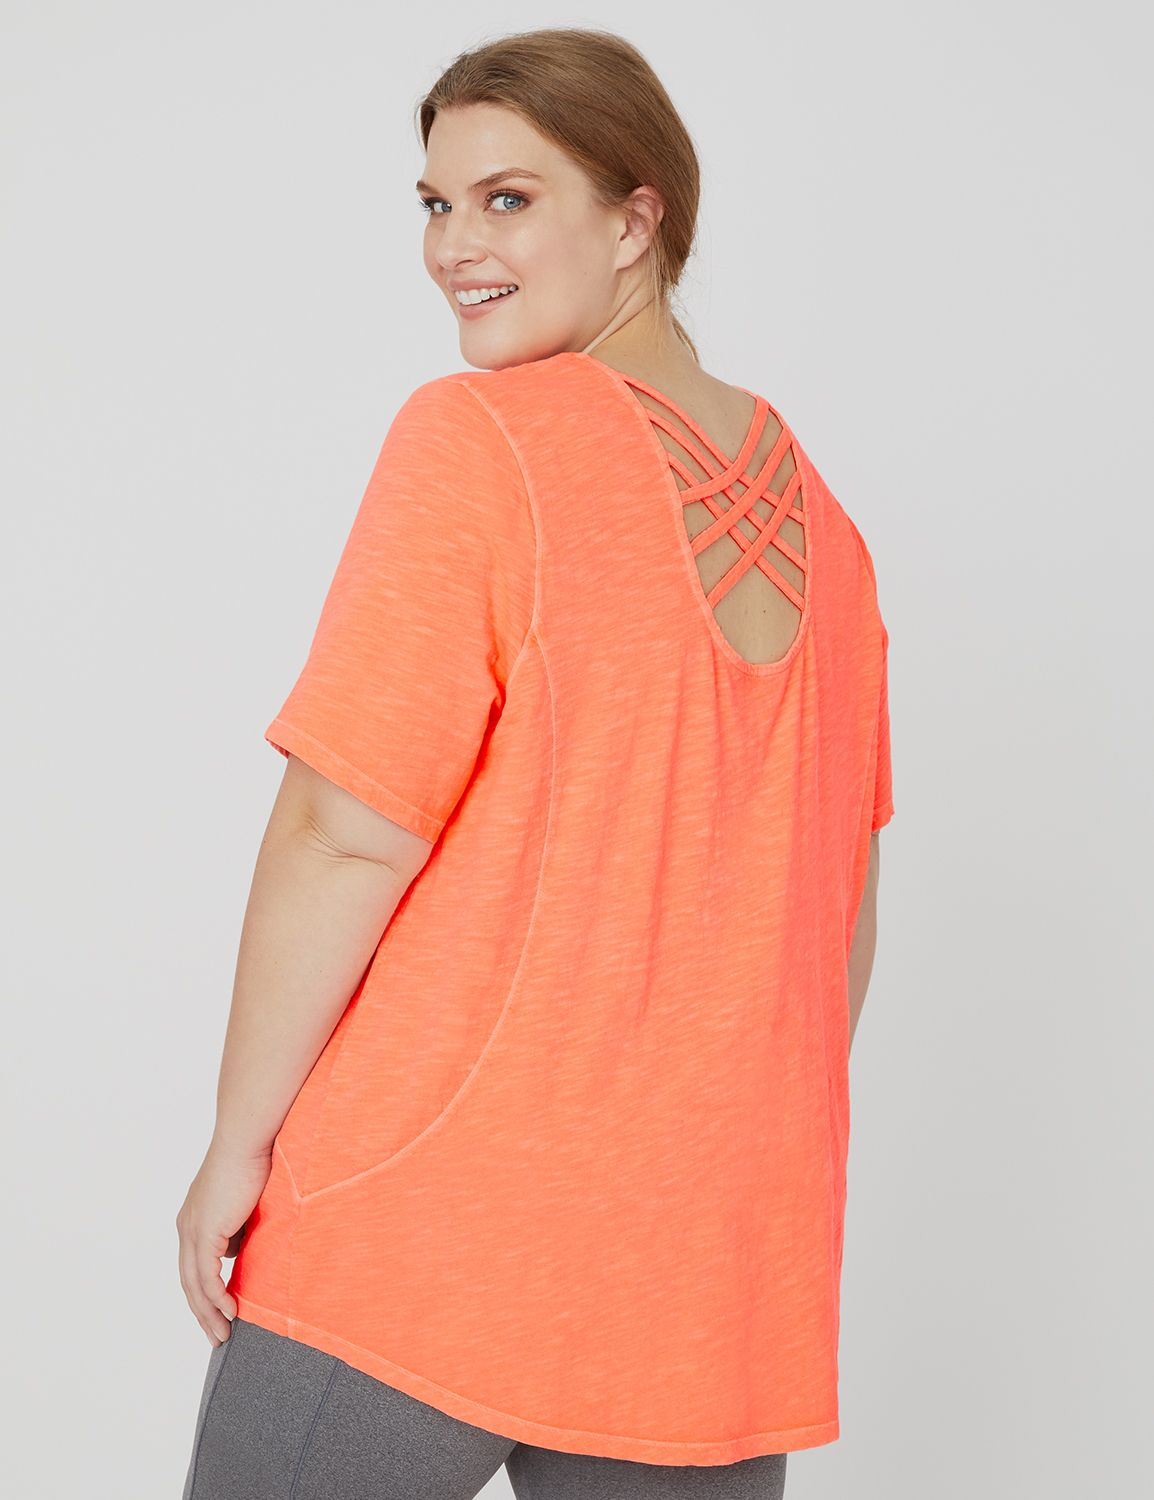 Short-Sleeve Crisscross Active Tee 1088551 SS Criss-Cross Back Top MP-300097727